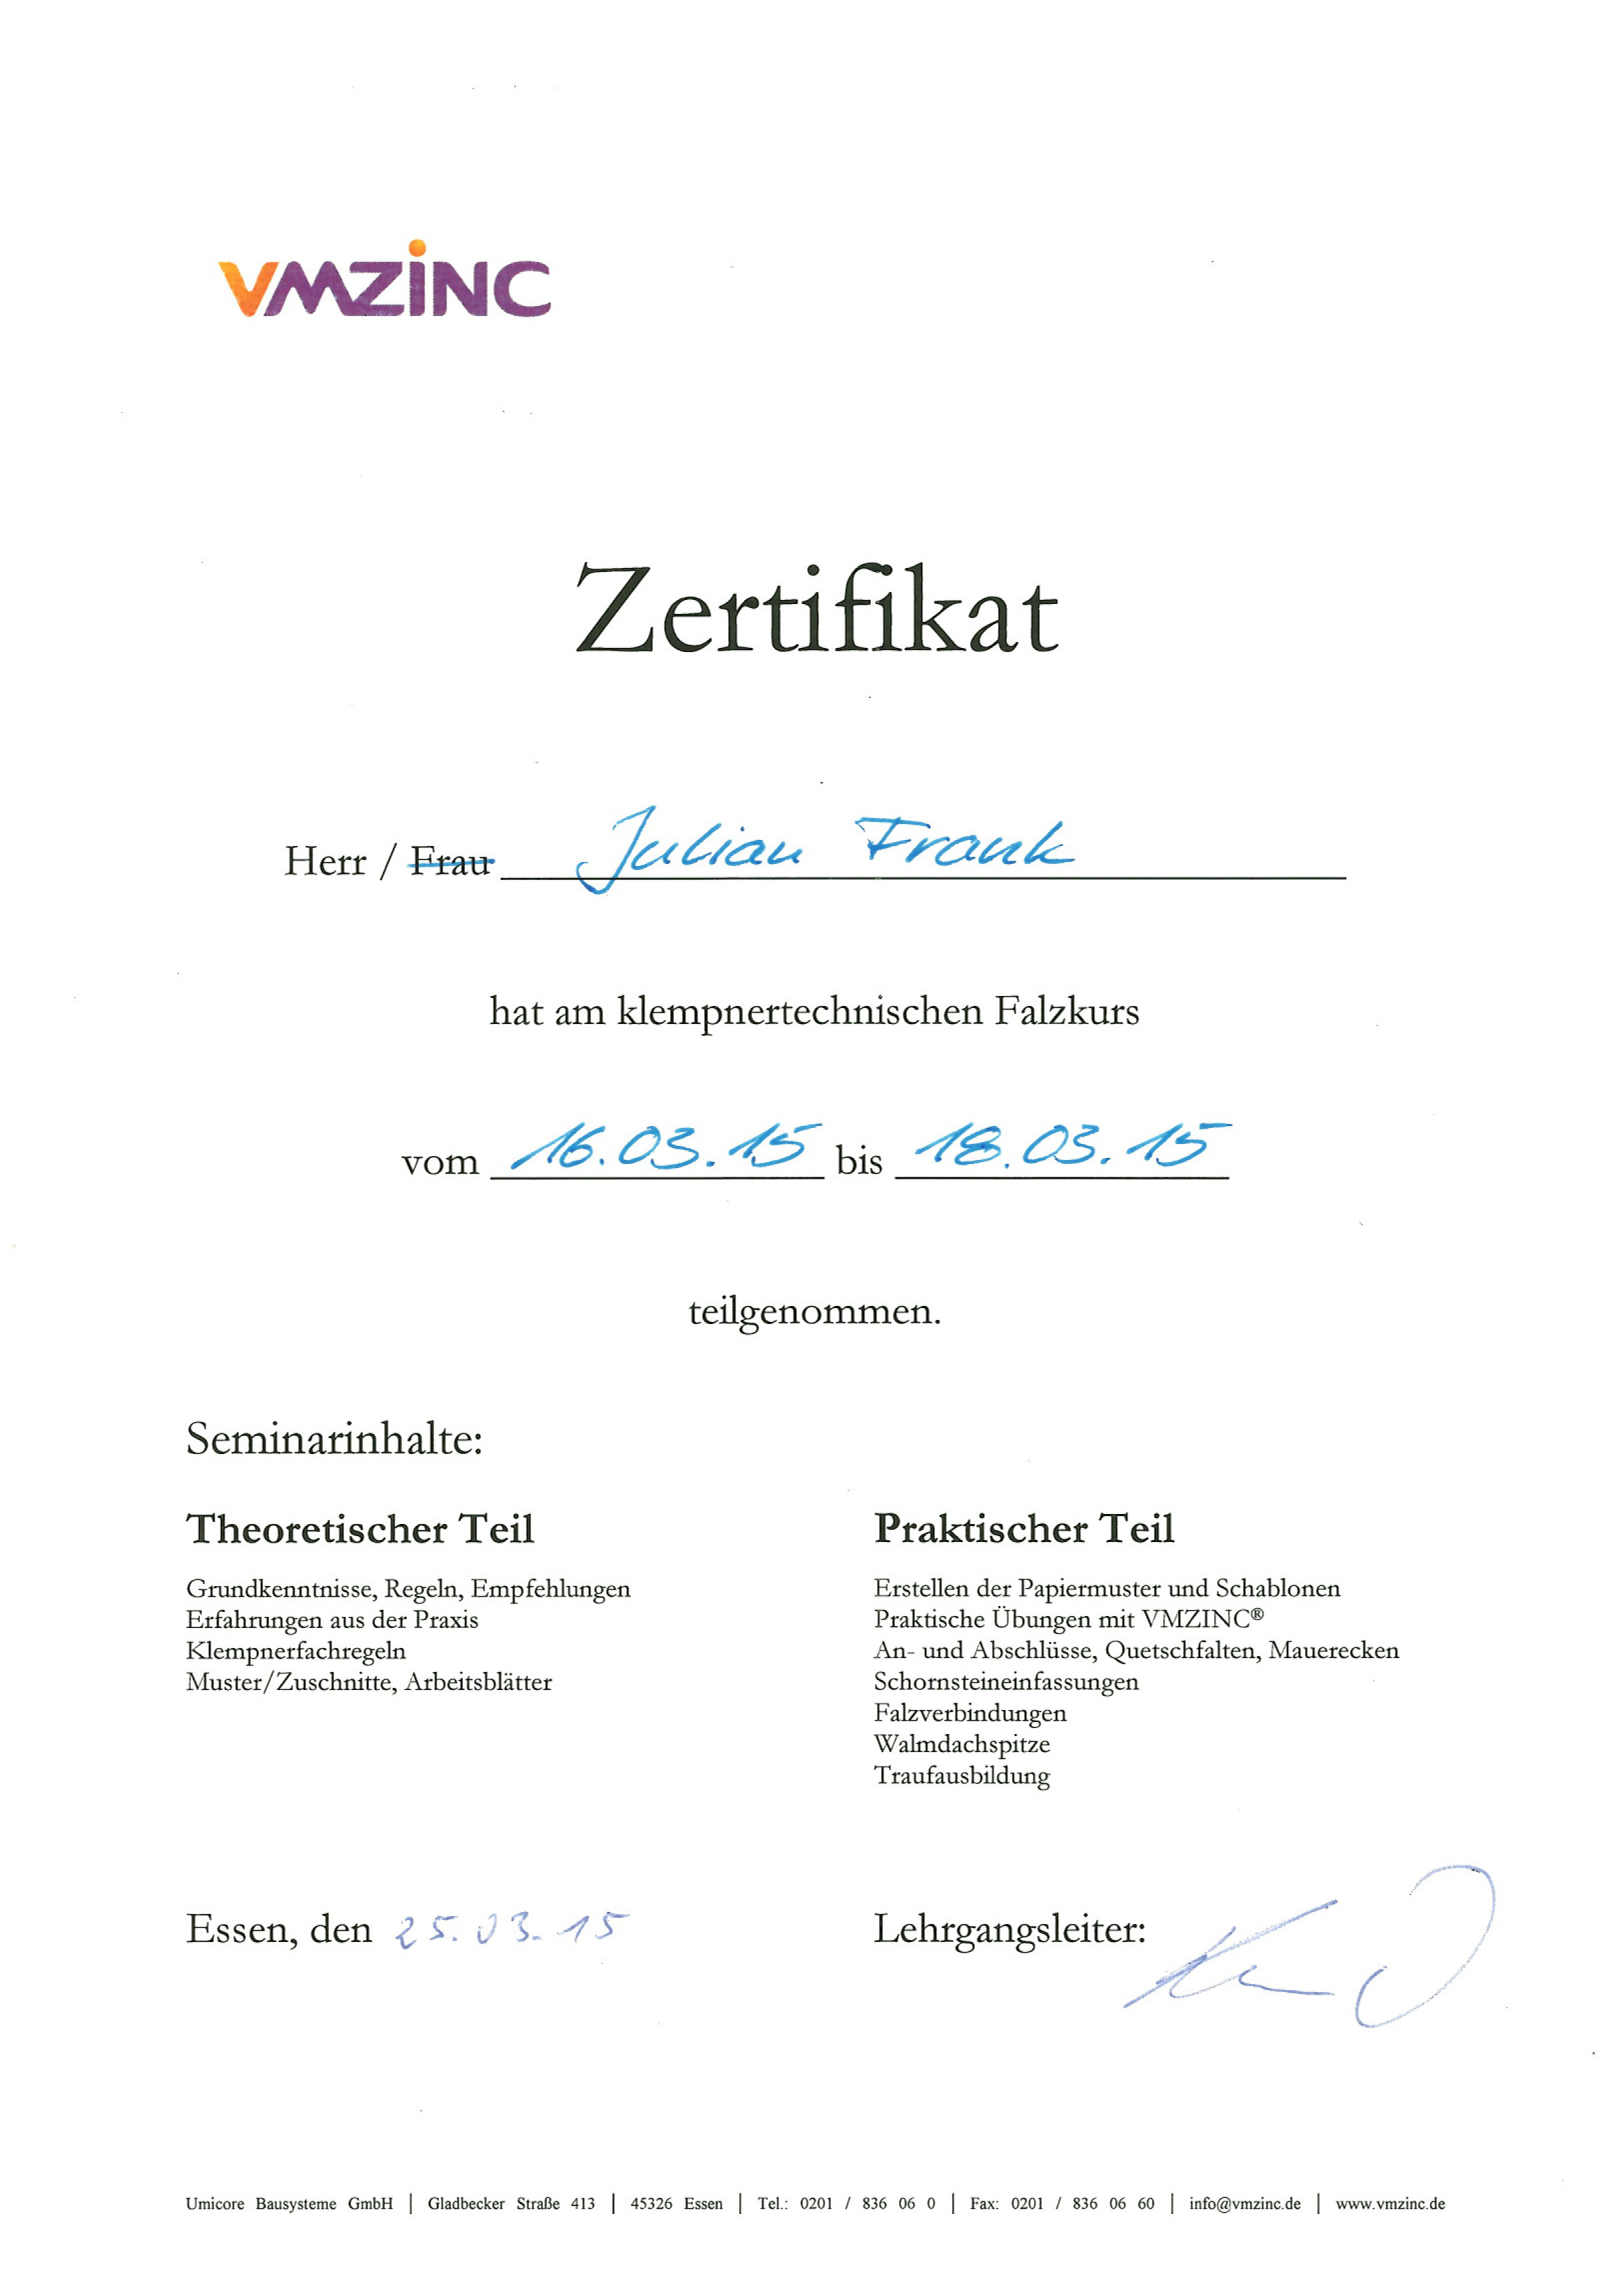 Fantastisch Taufe Zertifikat Vorlage Wort Ideen - Entry Level Resume ...